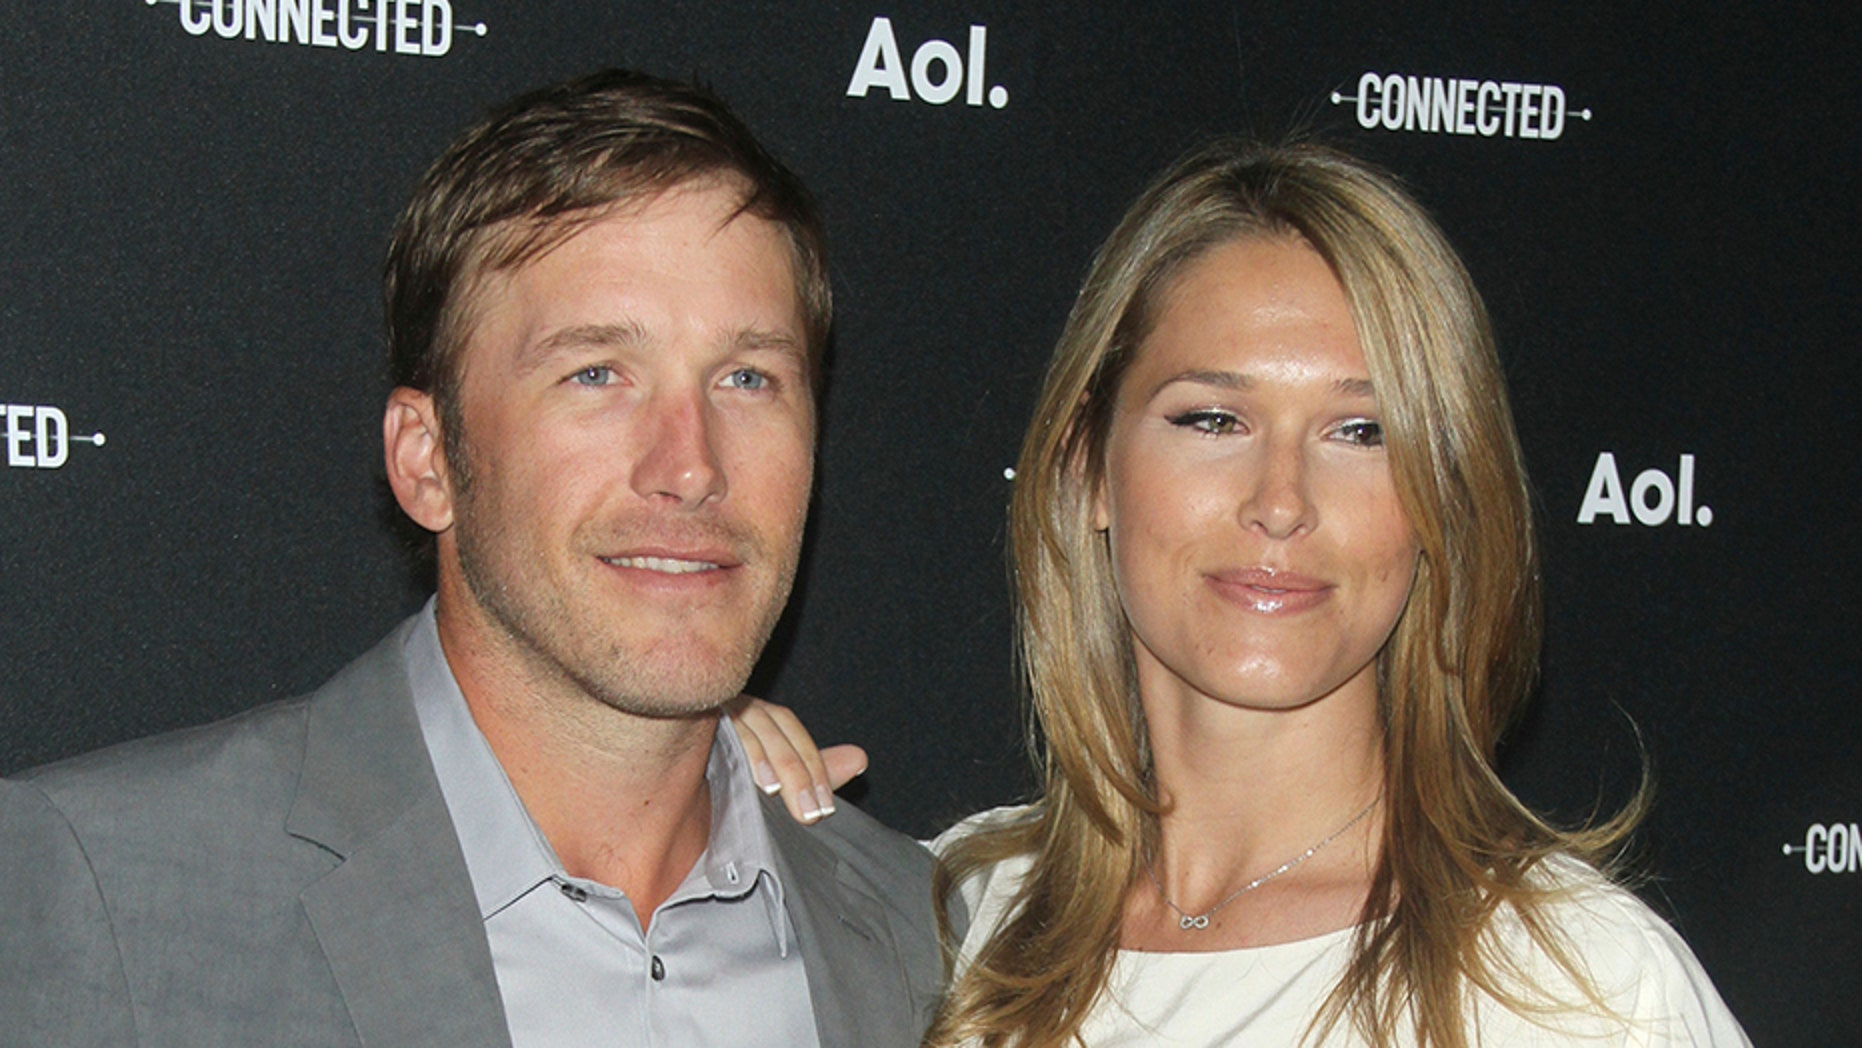 On Friday, Bode Miller's wife, Morgan, shared a heartbreaking photo of her daughter's final moments.